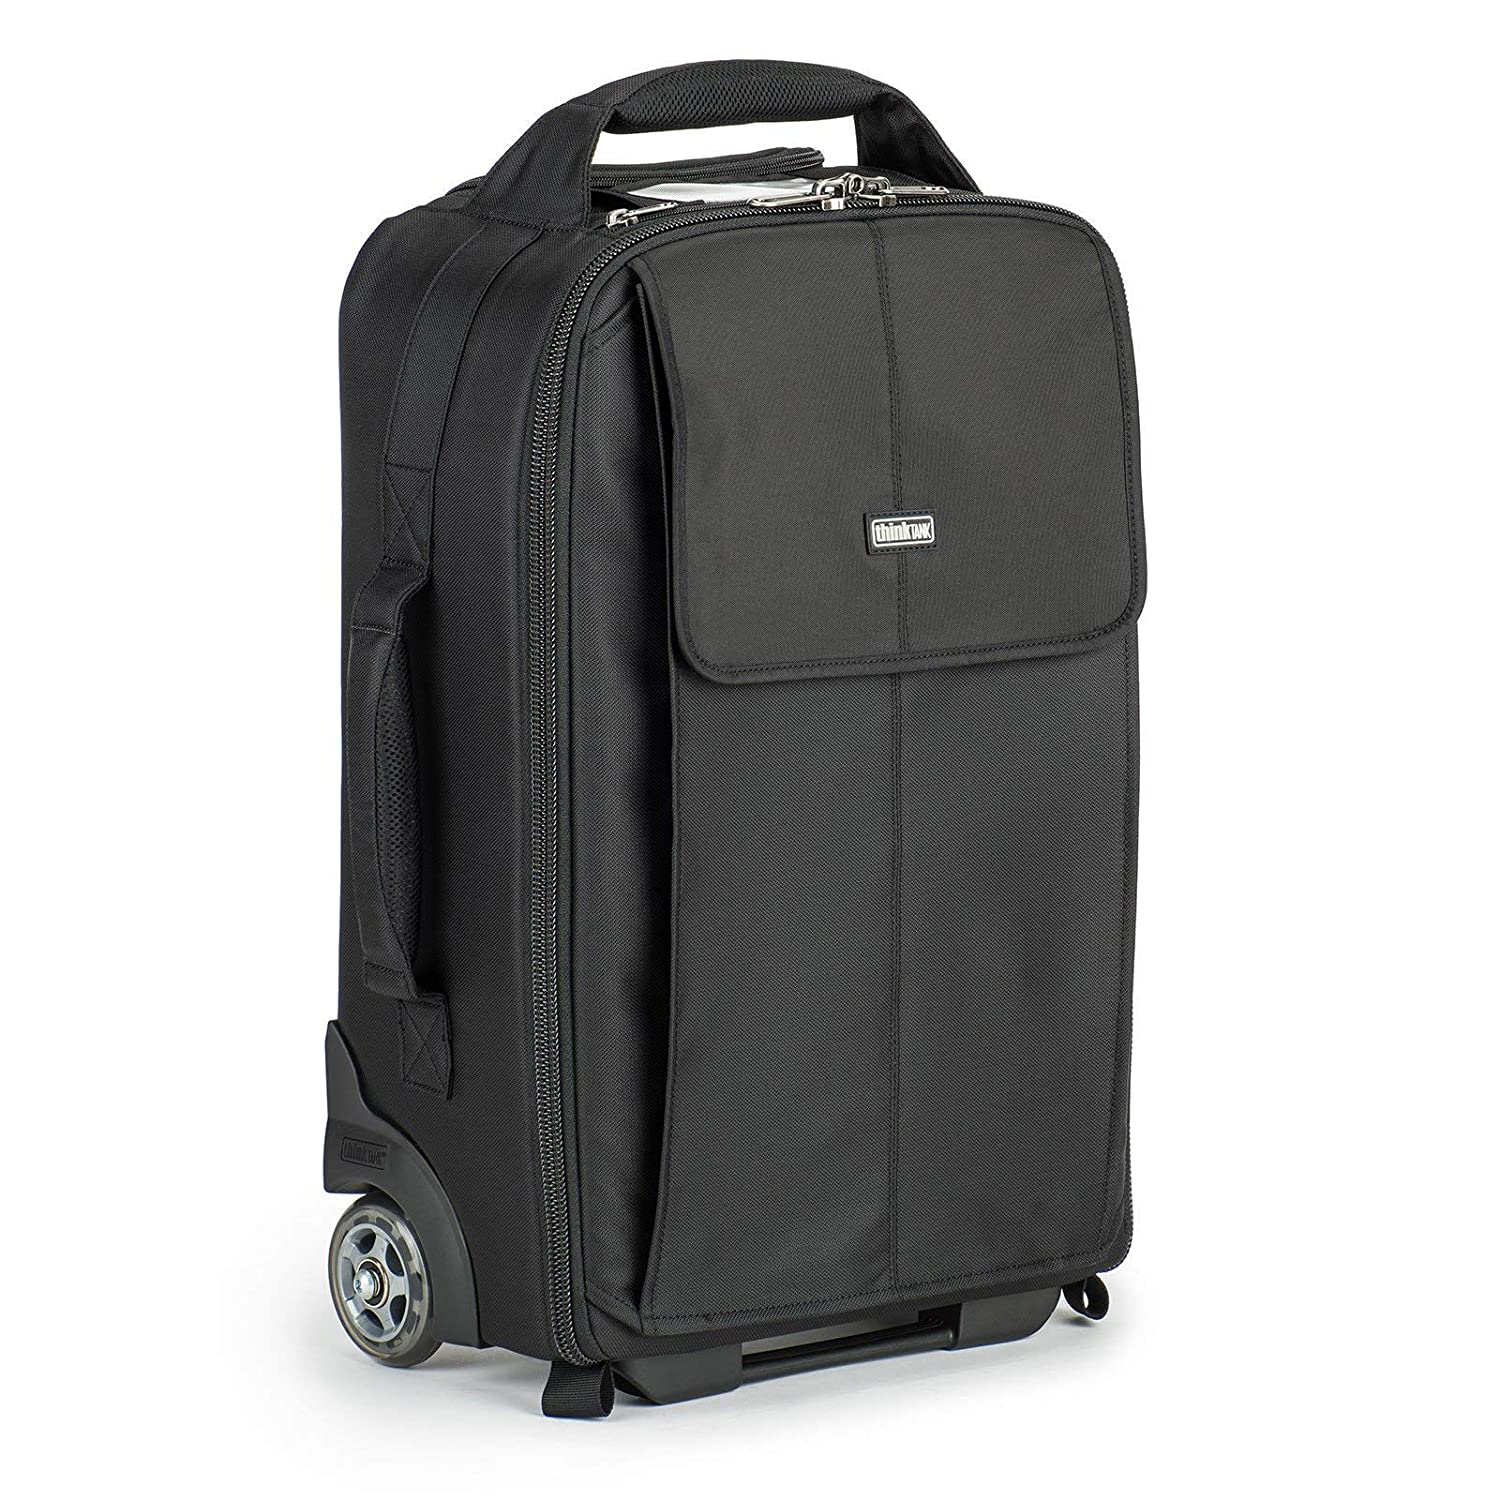 Airport Advantage Carry-On Roller Bag